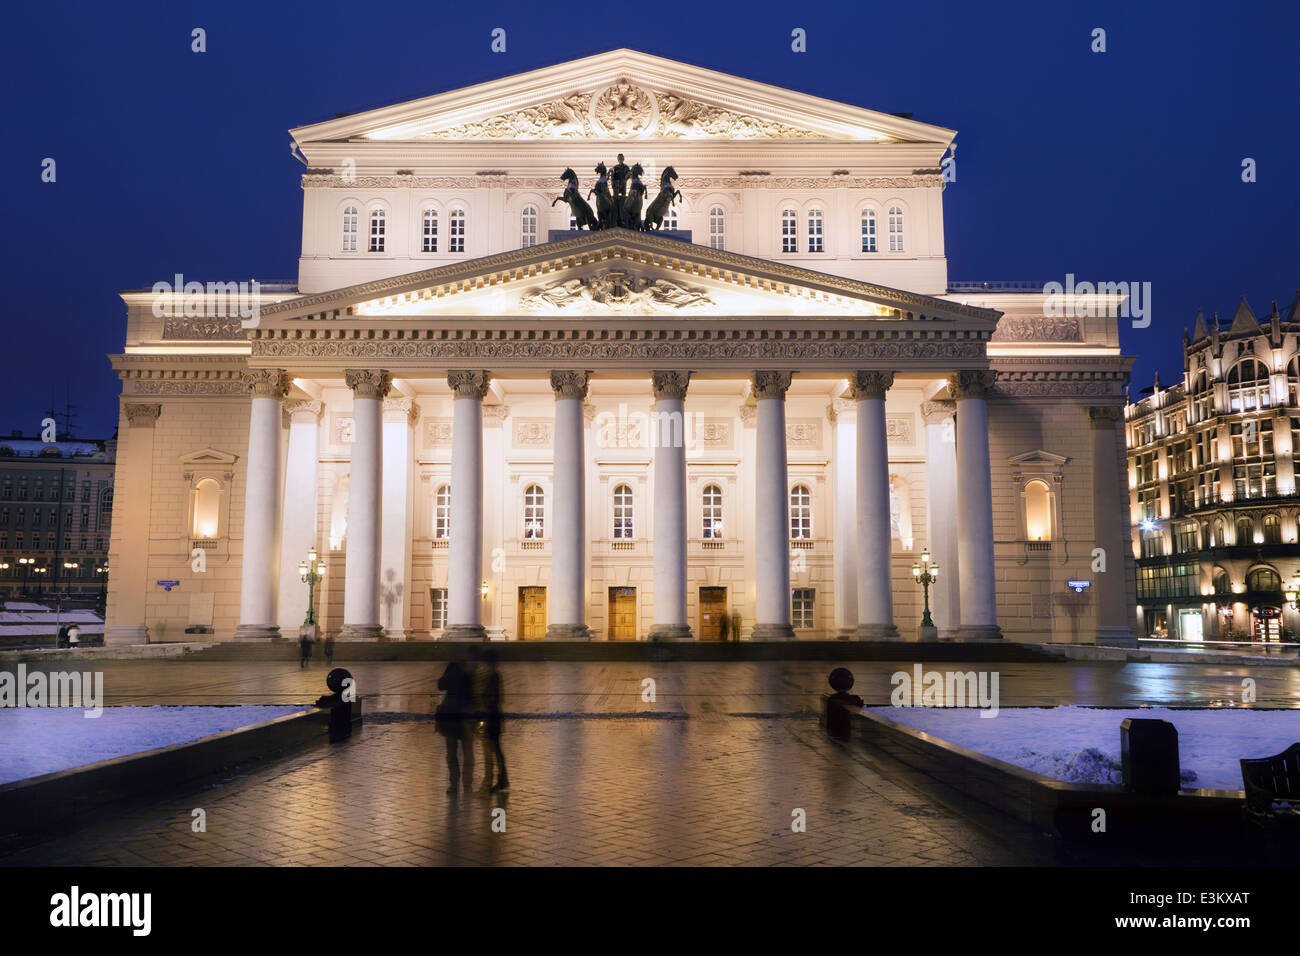 Night View Of The State Academic Bolshoi Theatre Opera And